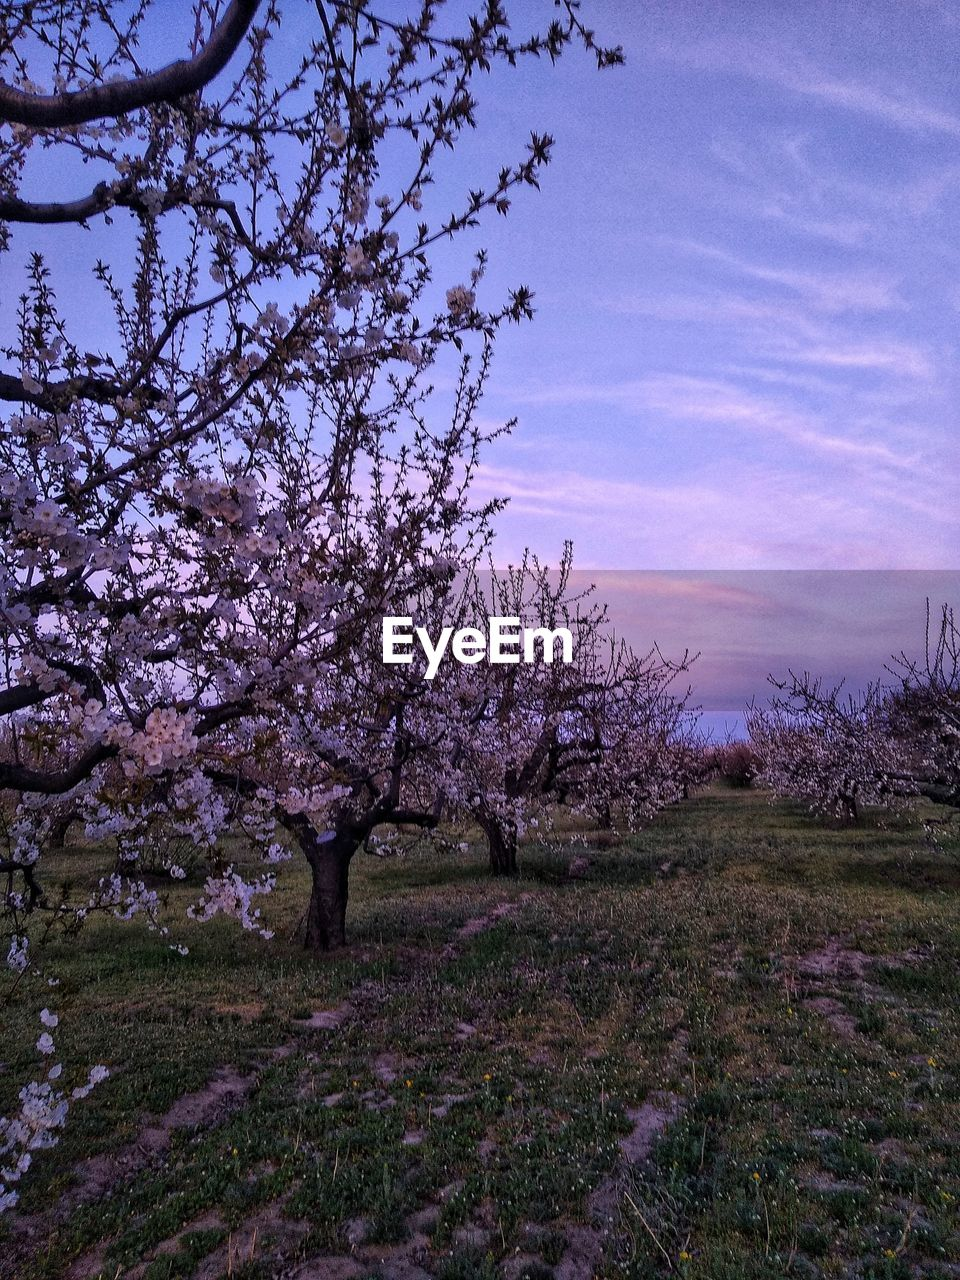 plant, beauty in nature, tree, sky, flower, growth, blossom, flowering plant, nature, tranquility, tranquil scene, scenics - nature, springtime, landscape, environment, field, land, no people, freshness, cloud - sky, outdoors, cherry blossom, cherry tree, purple